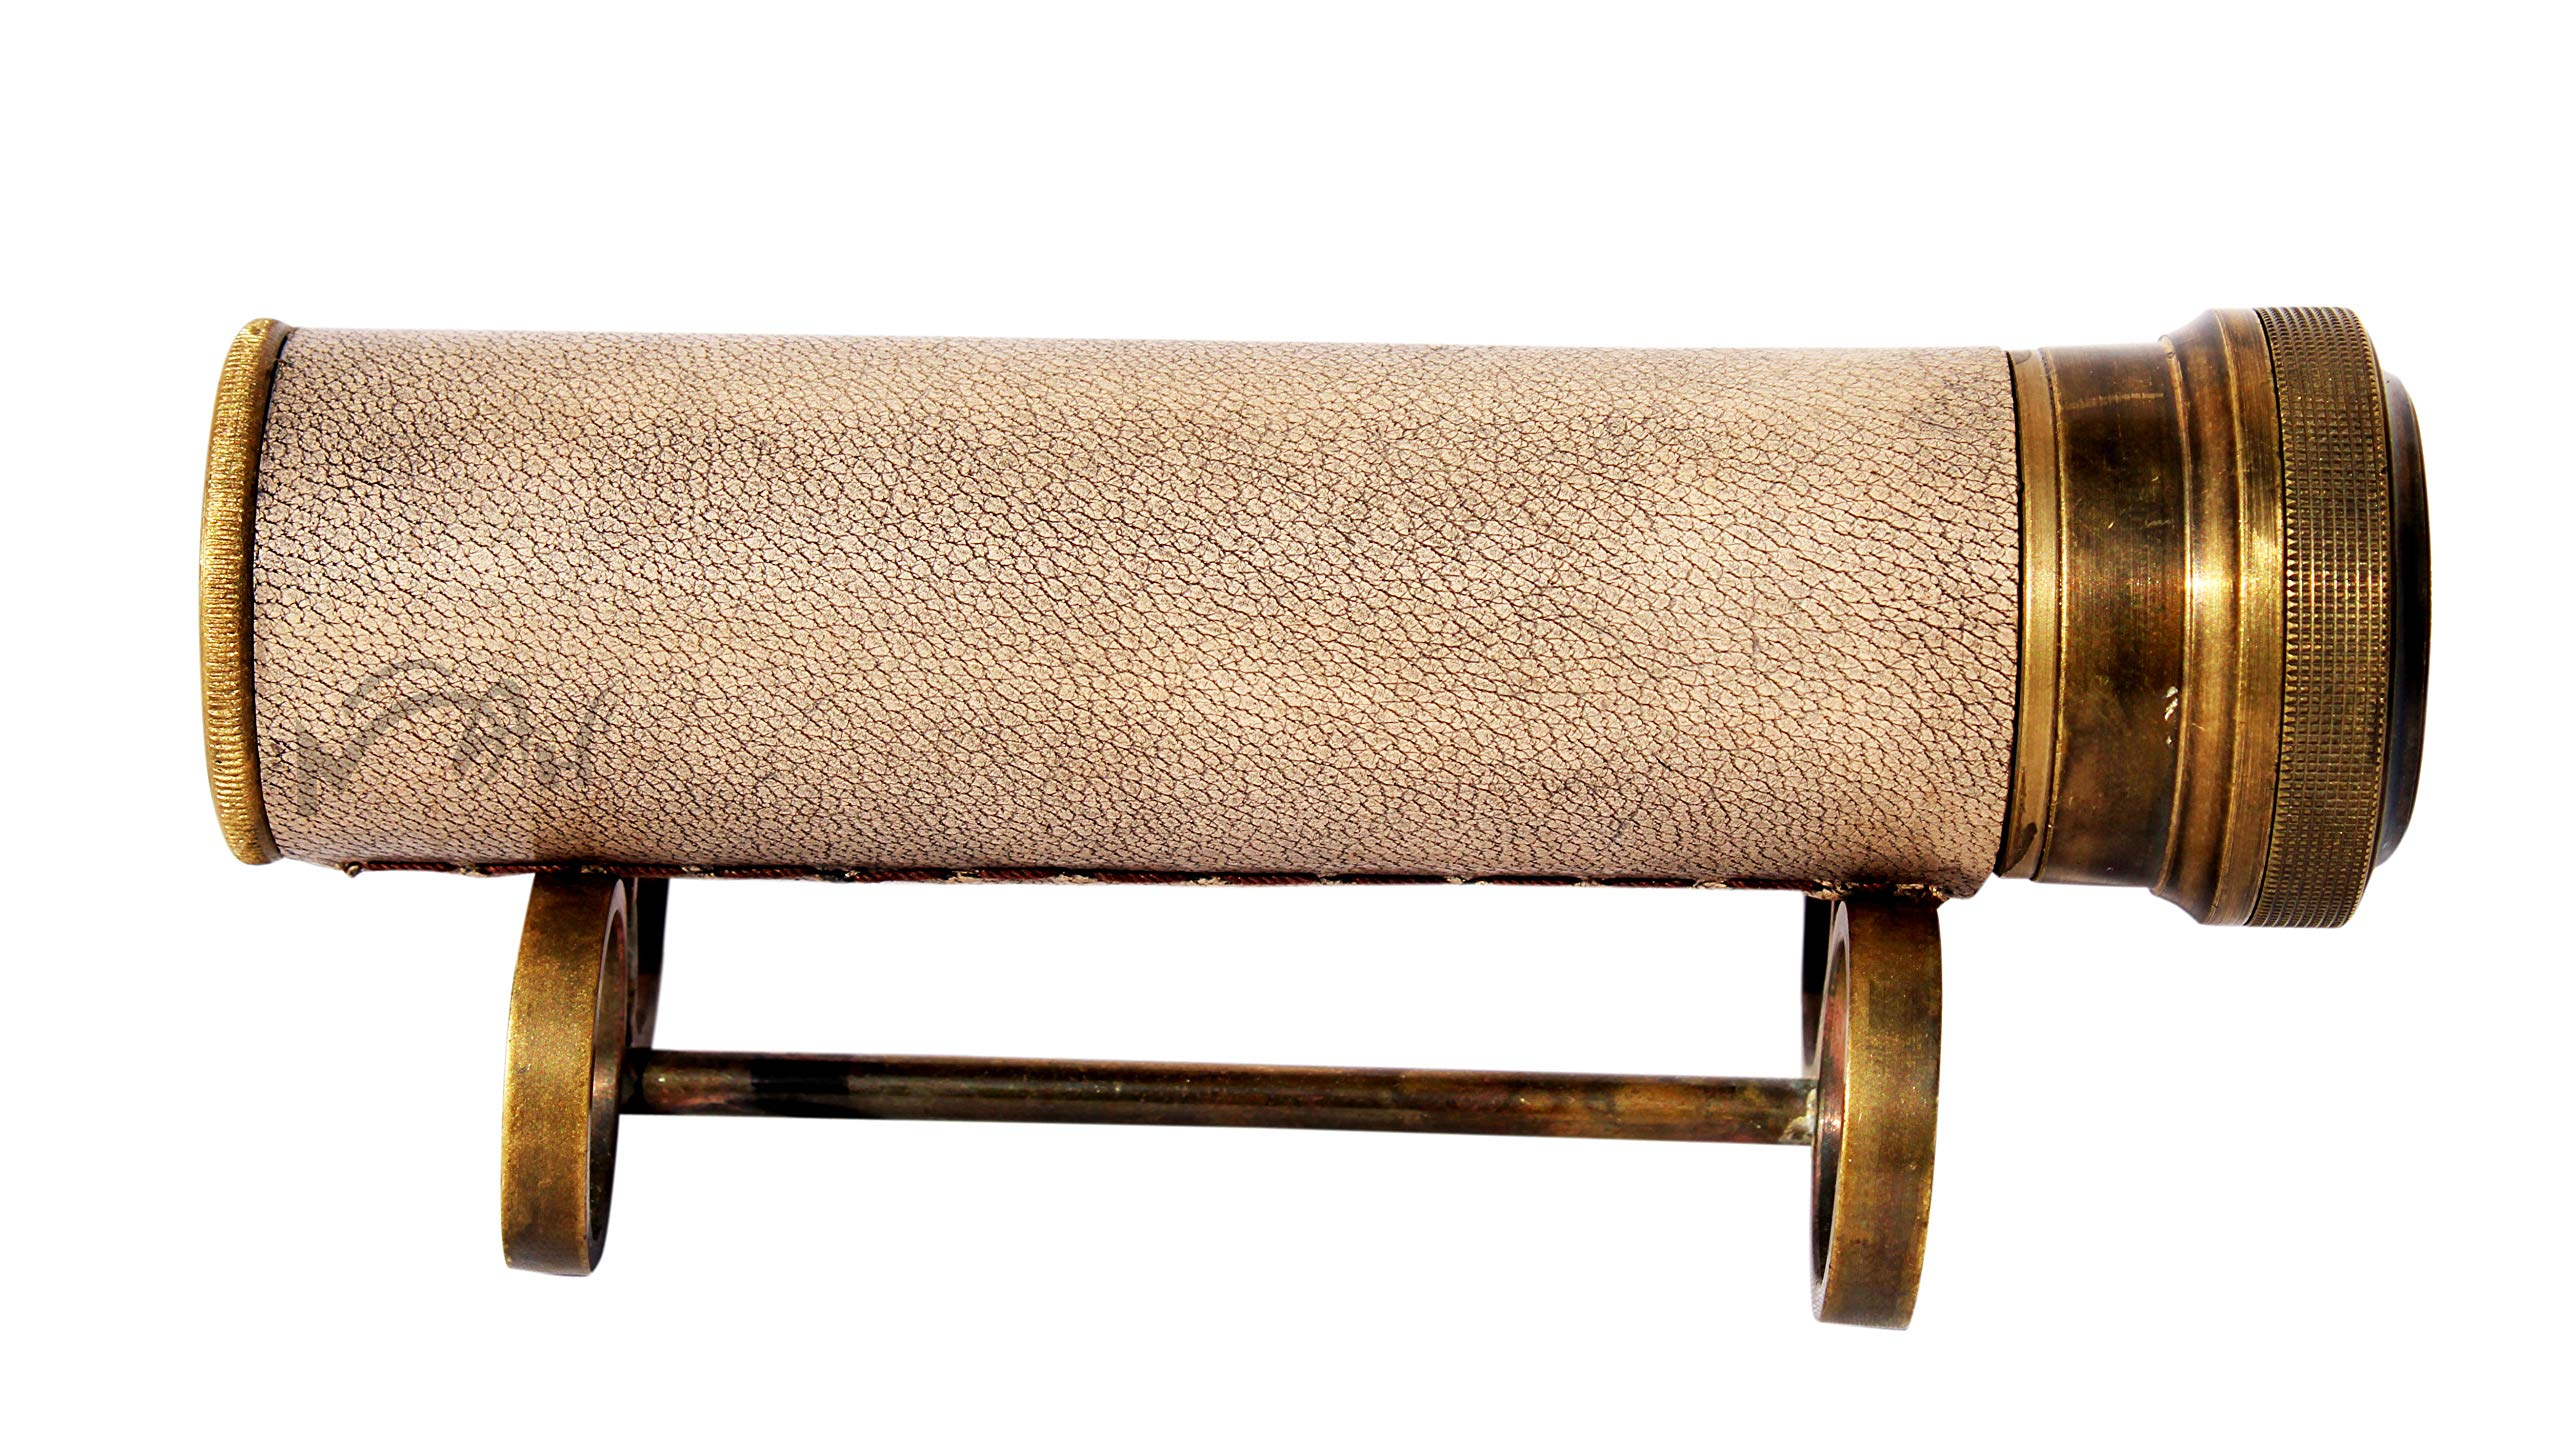 MAH Best Handmade Brass Kaleidoscope with Stand Gift for Everyone with Leather -3046